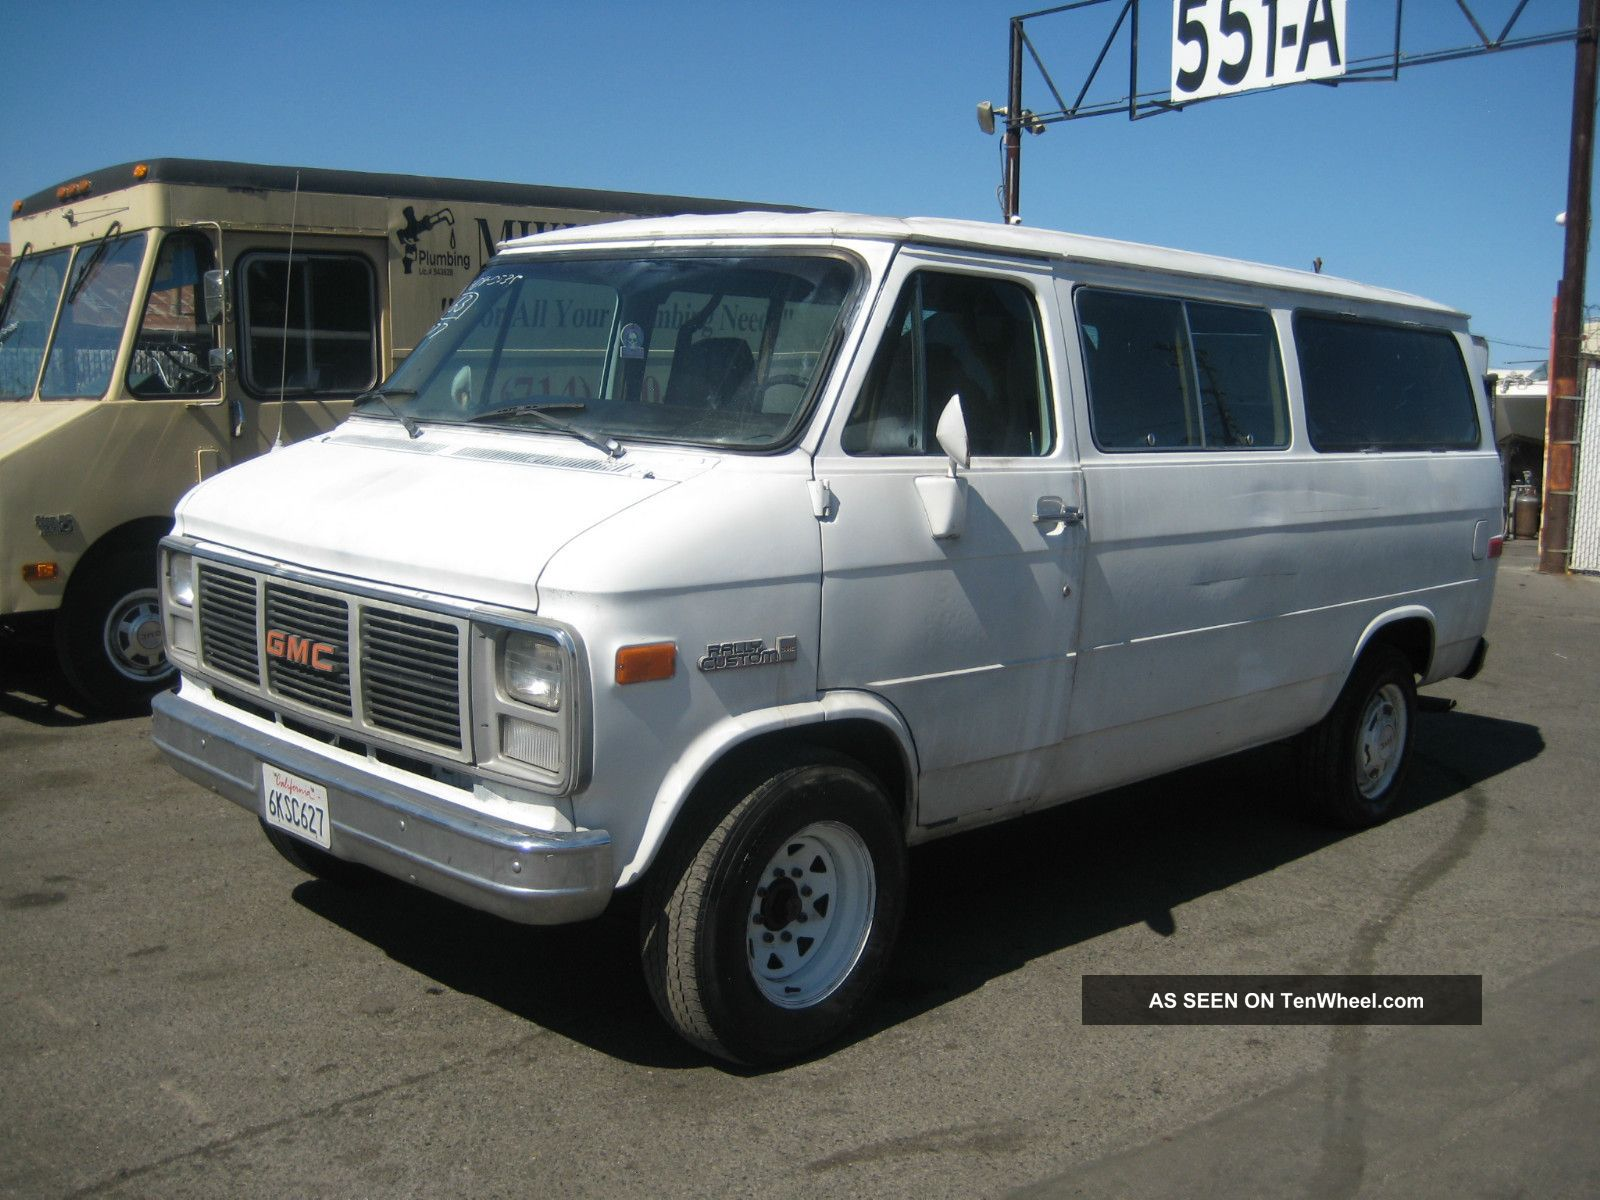 Gmc rally van #1